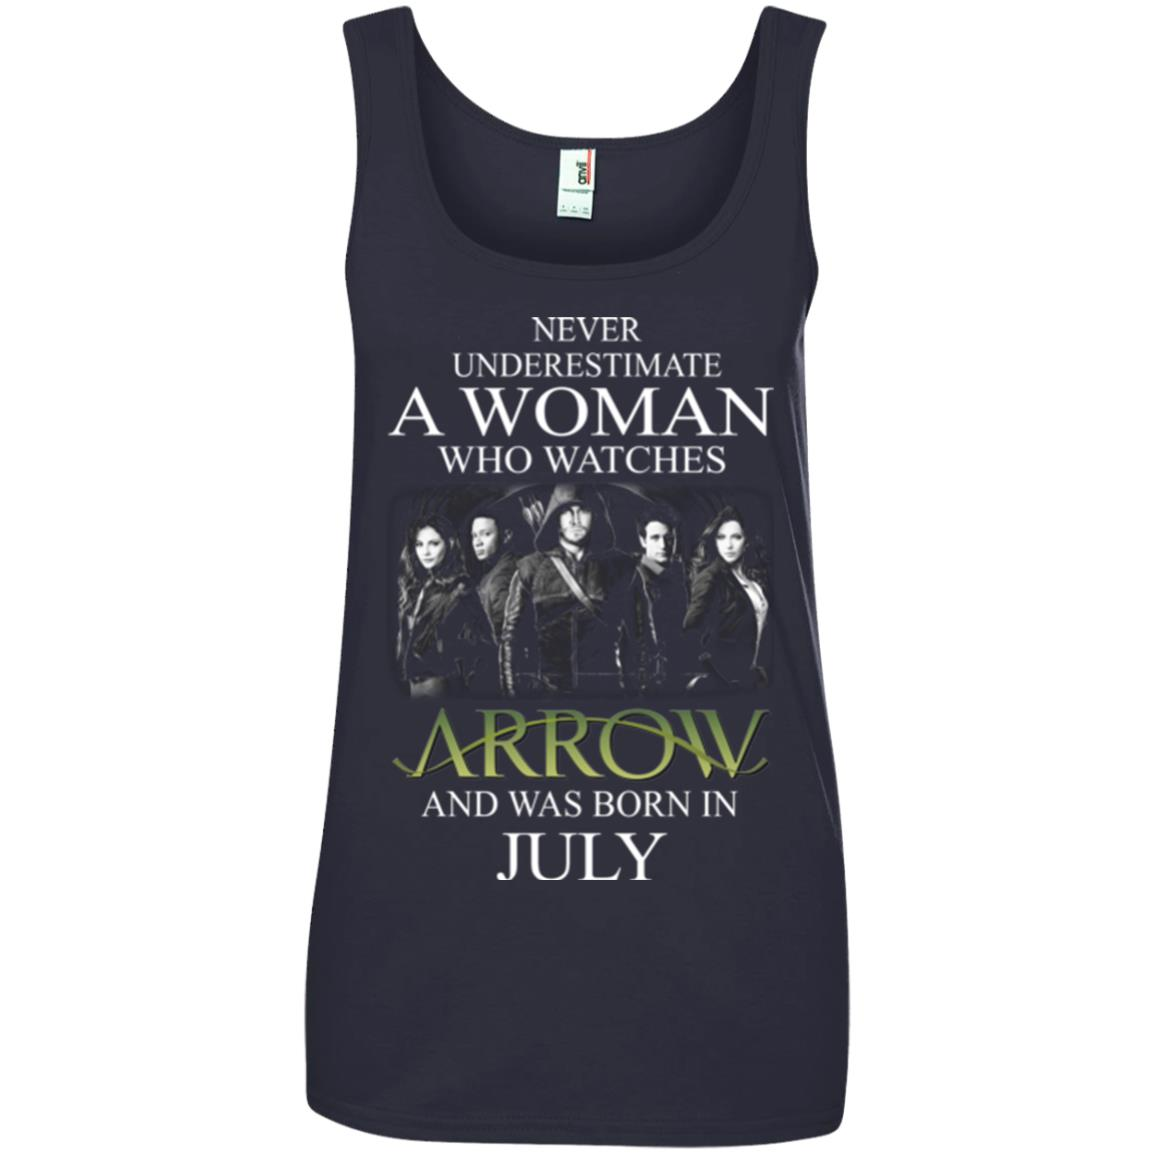 Never Underestimate A woman who watches Arrow and was born in July shirt - image 1527